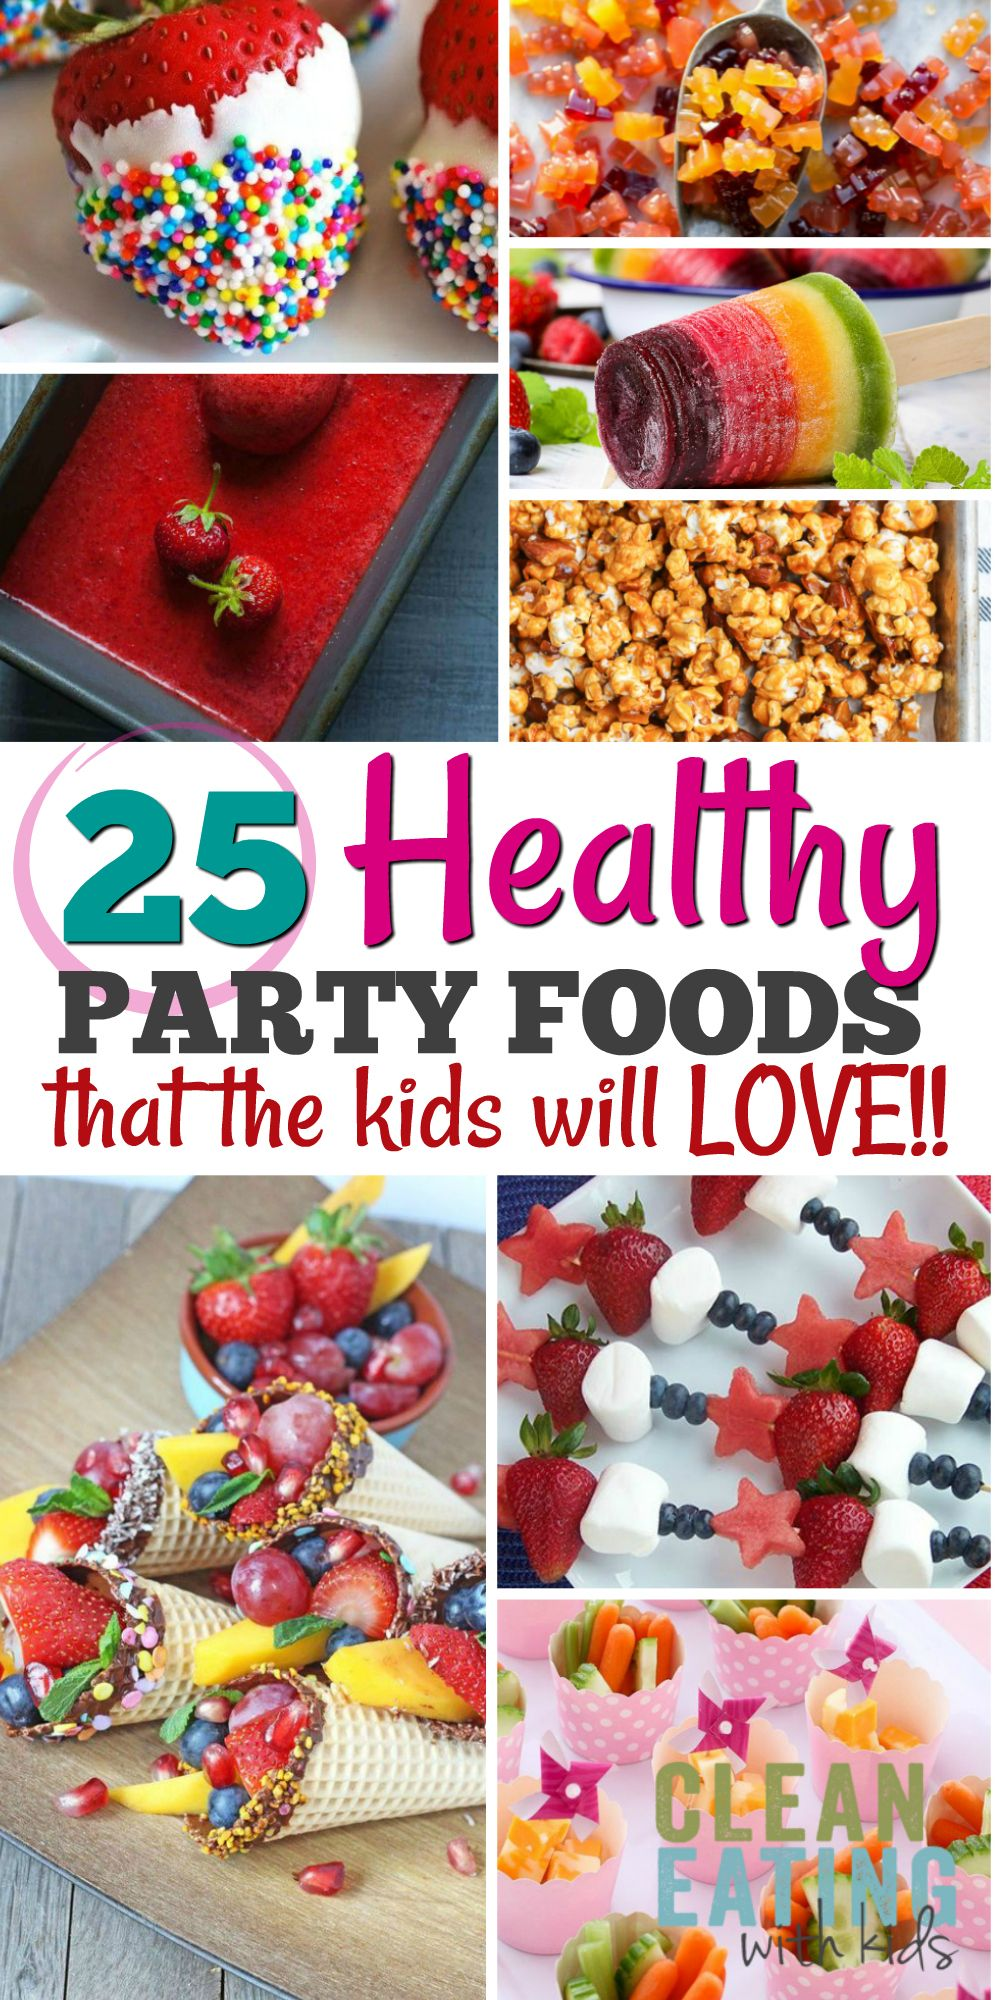 25 Healthy Birthday Party Food Ideas Clean Eating With Kids Party Food For Toddlers Healthy Kids Party Food Healthy Birthday Snacks